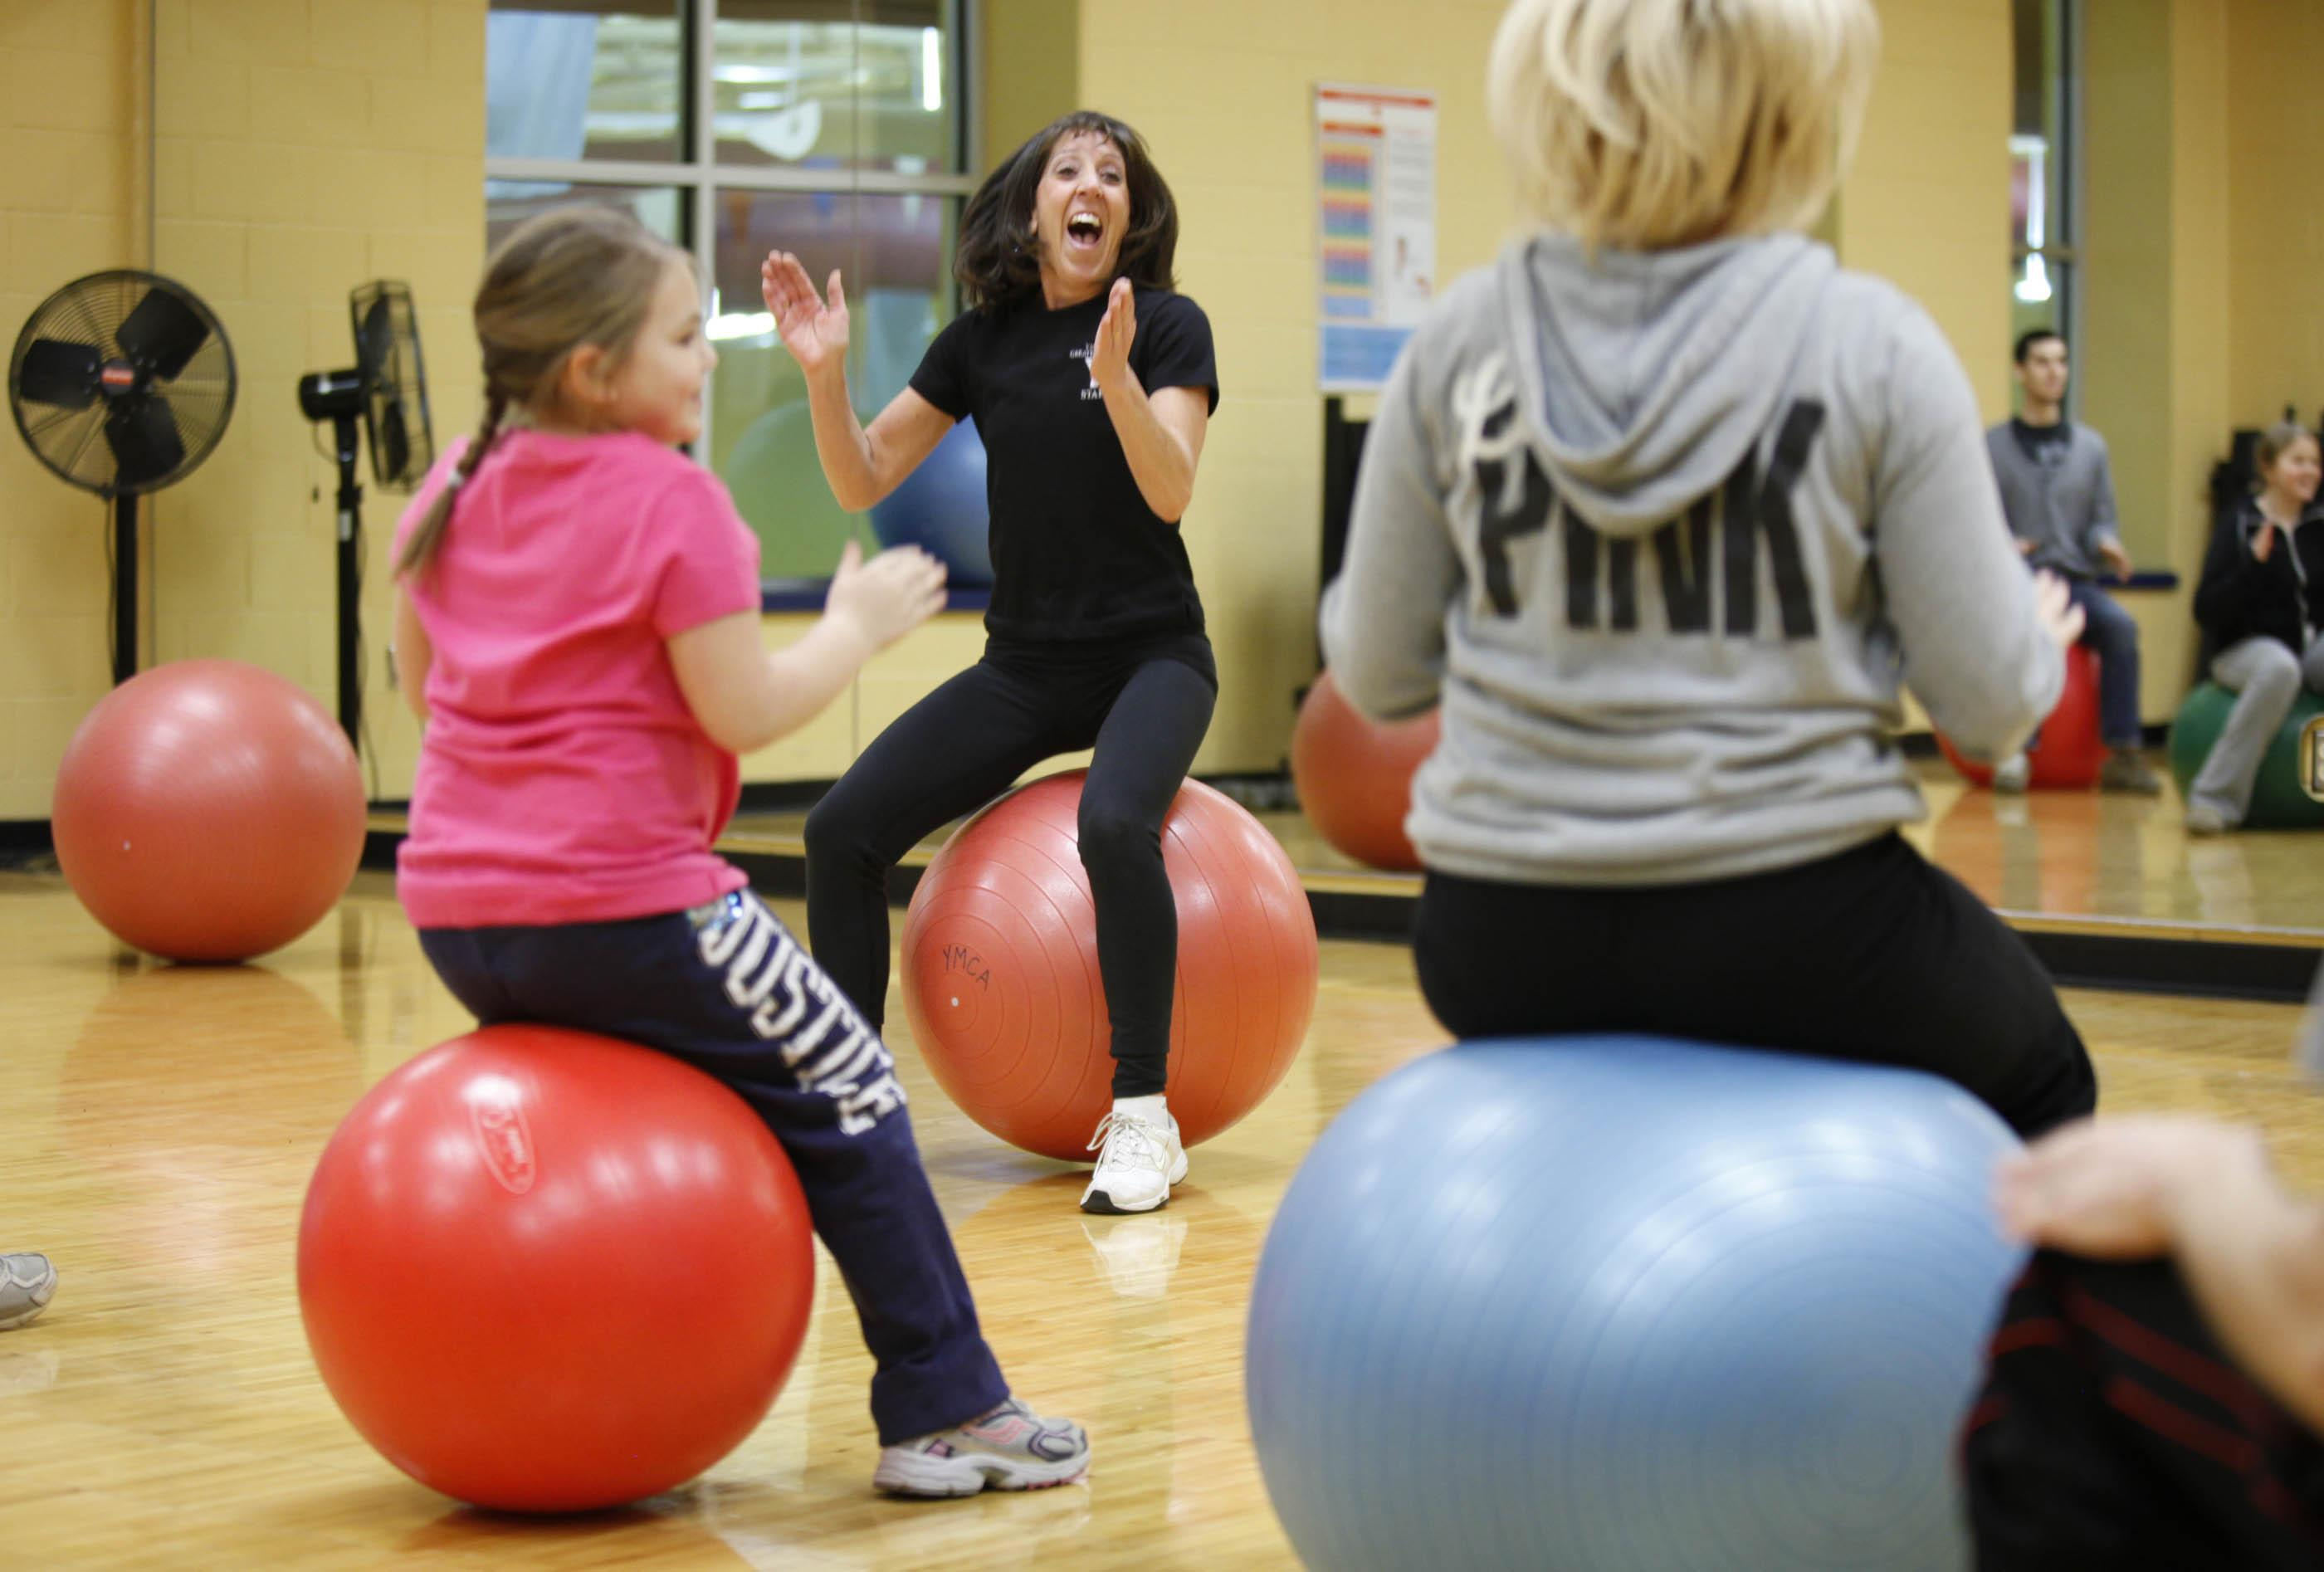 Families are welcome for Healthy Kids Day Saturday at YMCA branches across the Buffalo-Niagara region. Discounts to sign up for memberships and summer camps are available throughout the weekend. (Harry Scull Jr./Buffalo News file photo)